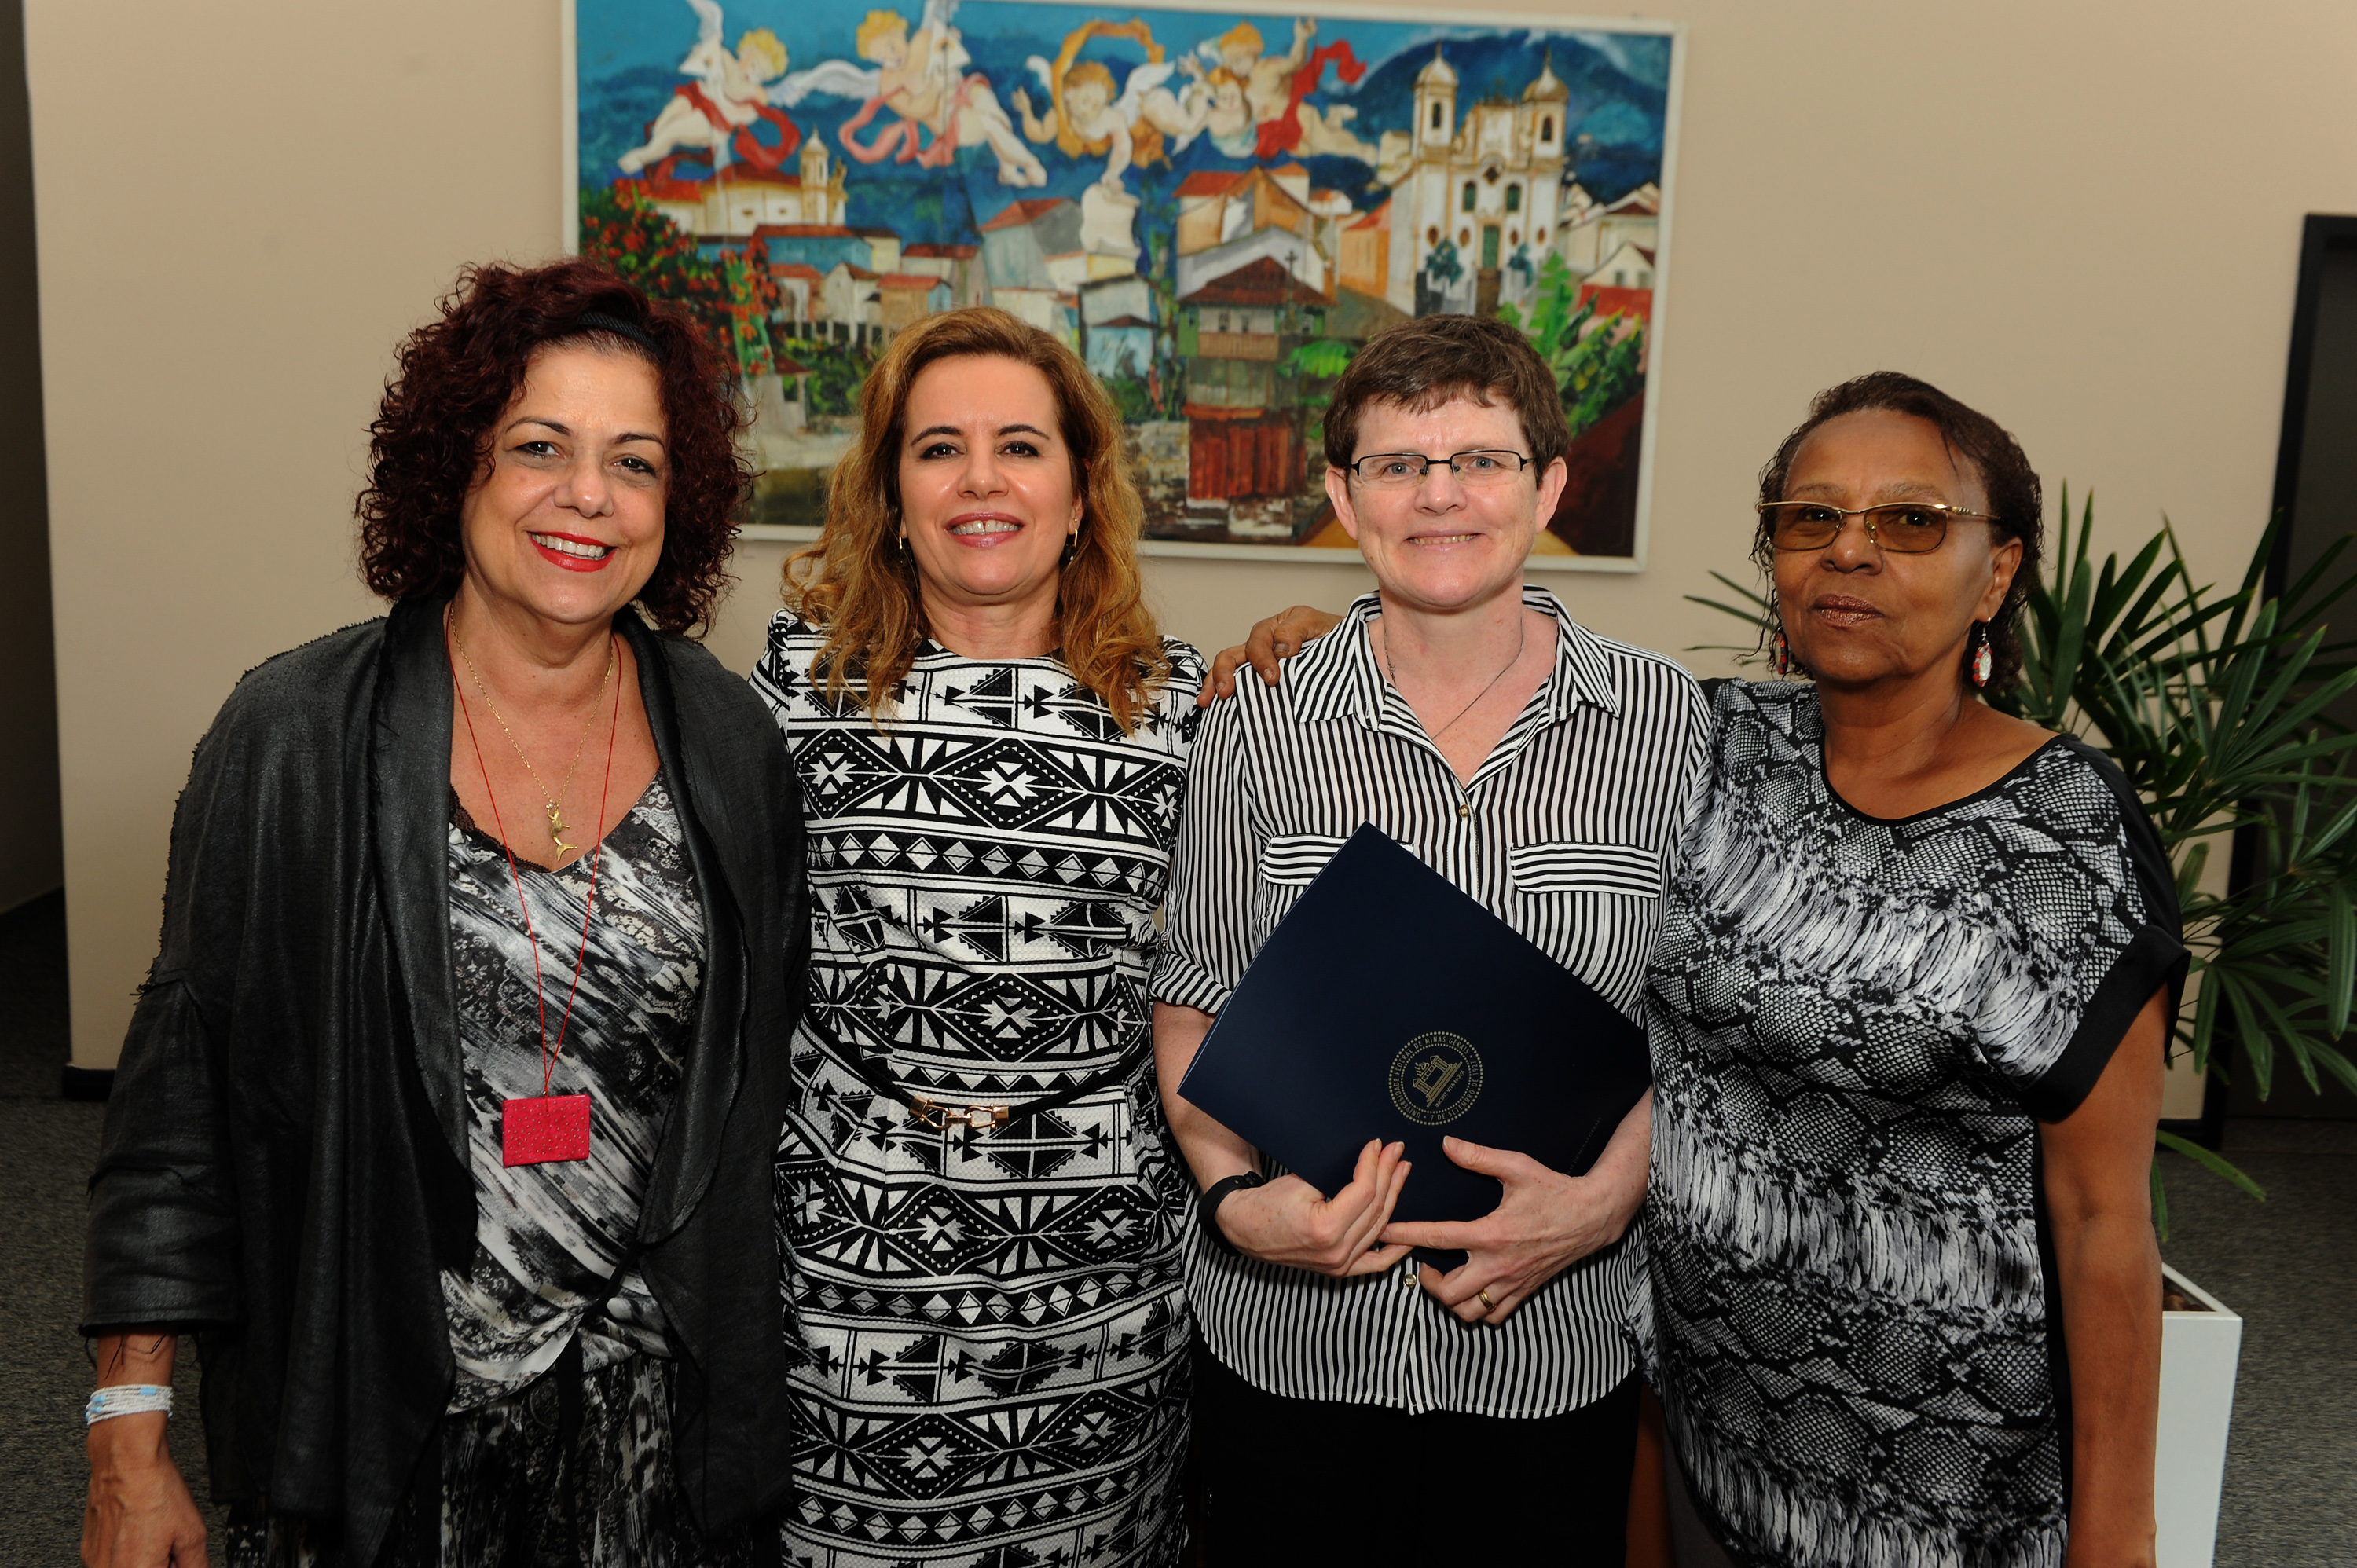 From left: Lucia Castello Branco, Professor at the literary faculty of UFMG, Vice Rector Sandra Goulart Almeida of the Universidade Federal de Minas Gerais (UFMG), Elisabeth Dyvik, Programme Director ICORN, and Leda Maria Martins, Director of Cultural Actions at the UFMG. Photo.